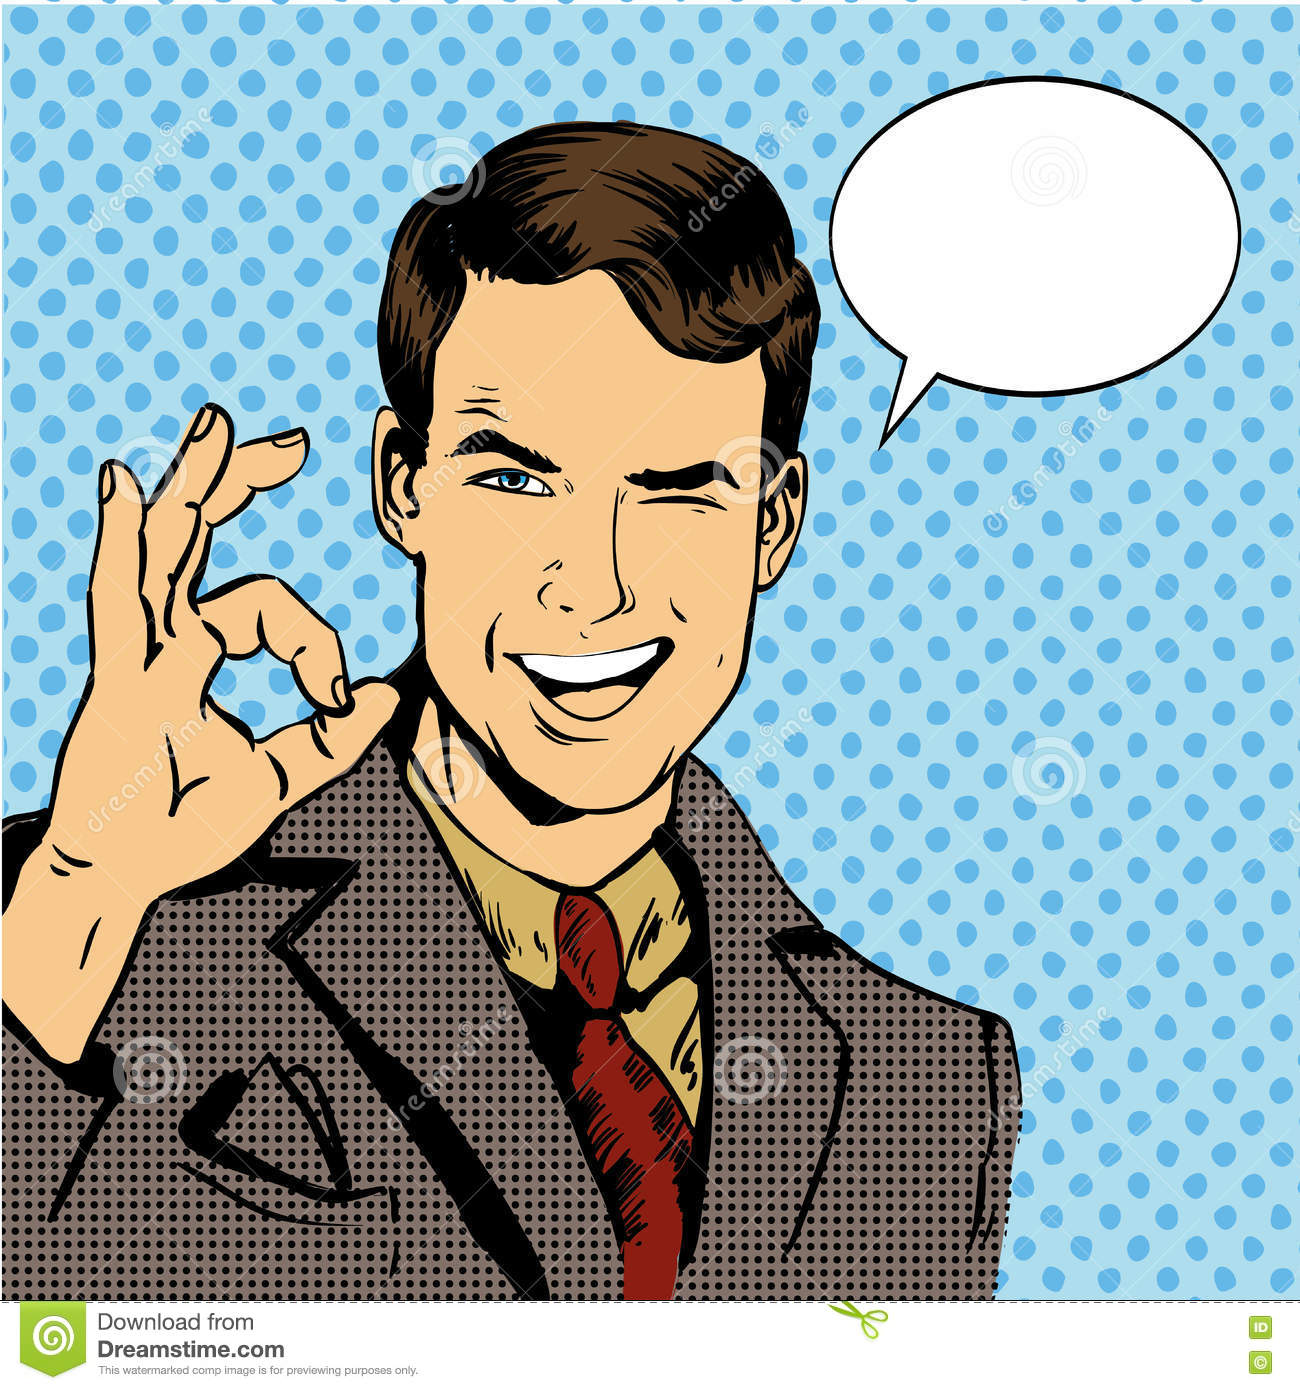 Man smile and shows OK hand sign with speech bubble. Vector illustration in retro comic pop art style